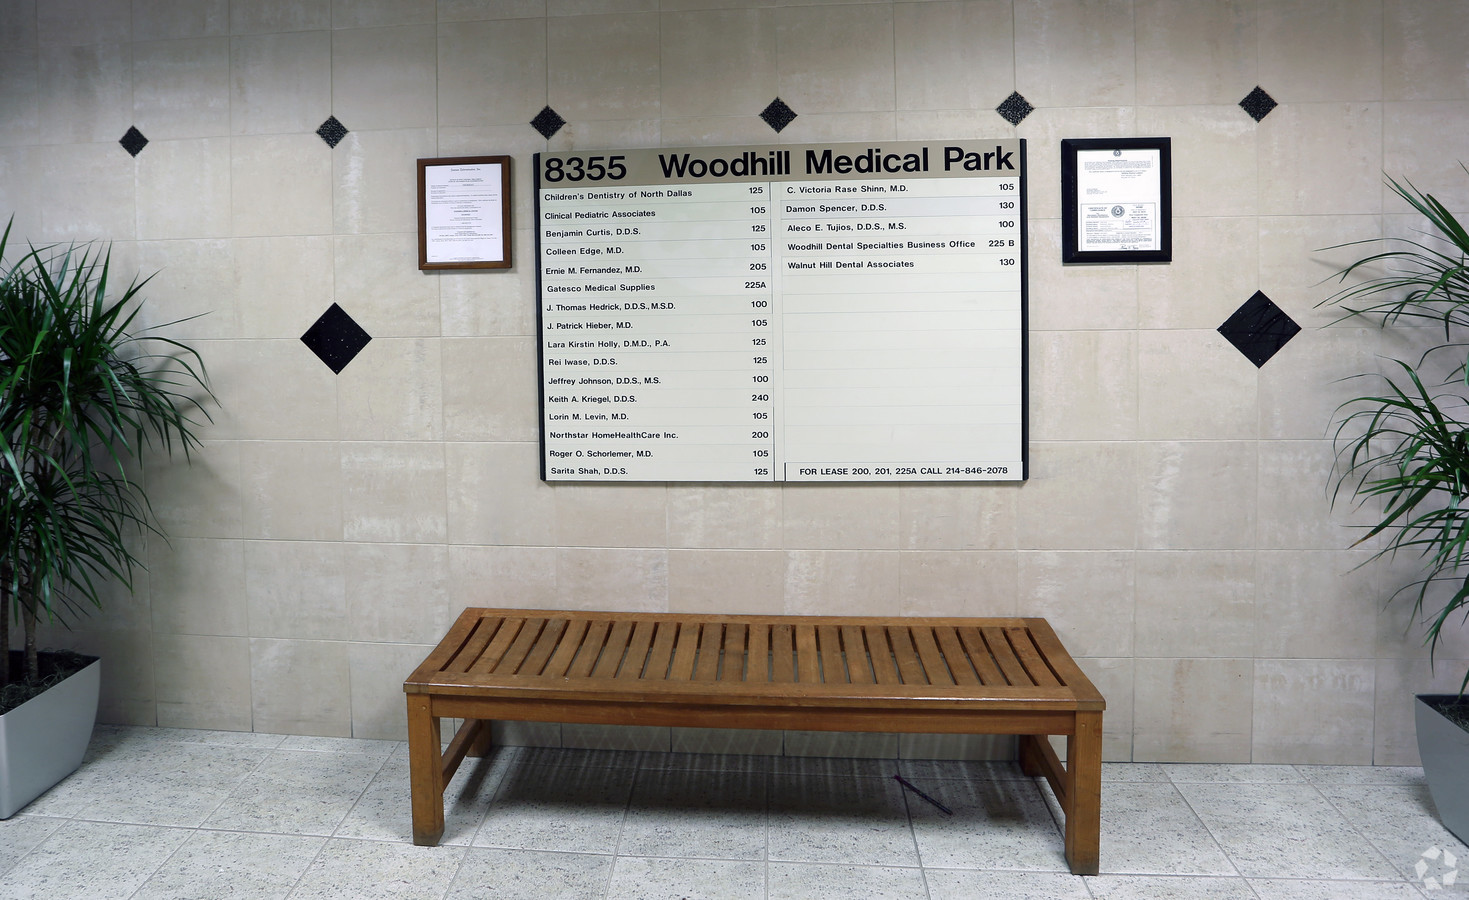 Medical Office Suite in Dallas - Suite 200 - Image 7 of 20